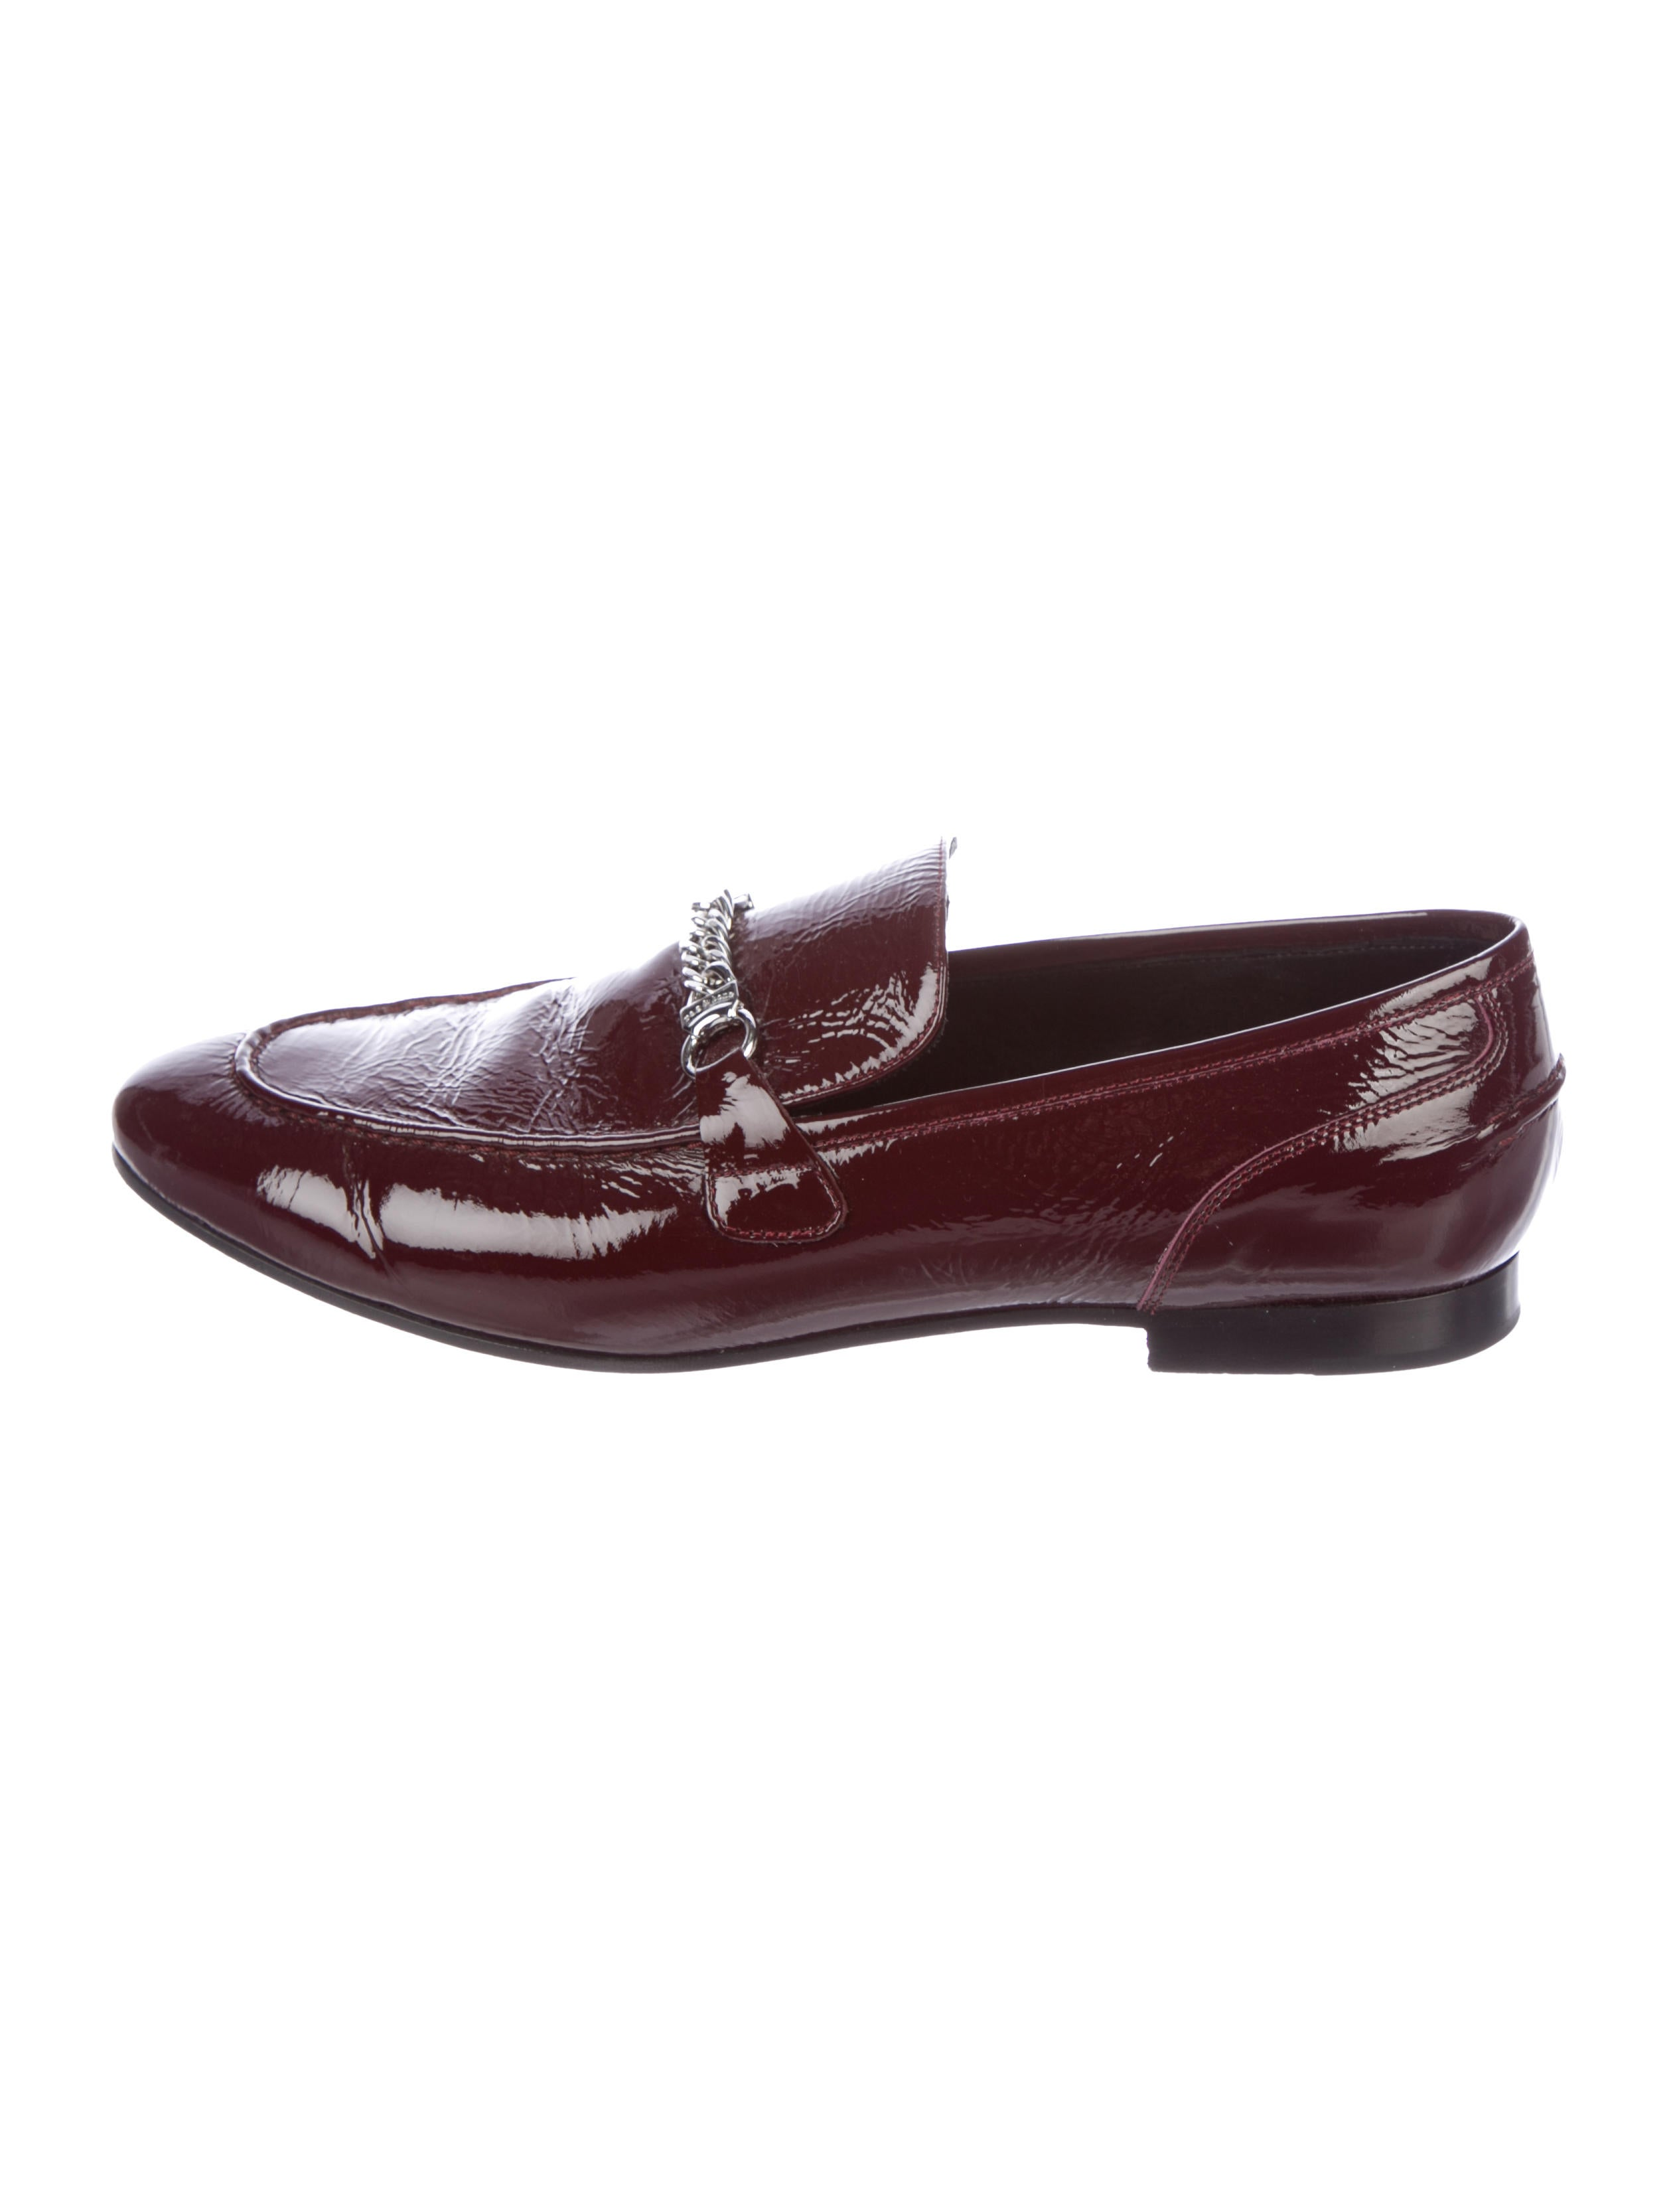 32913d01dc Rag & Bone Cooper Patent Leather Loafers - Shoes - WRAGB112324 | The ...